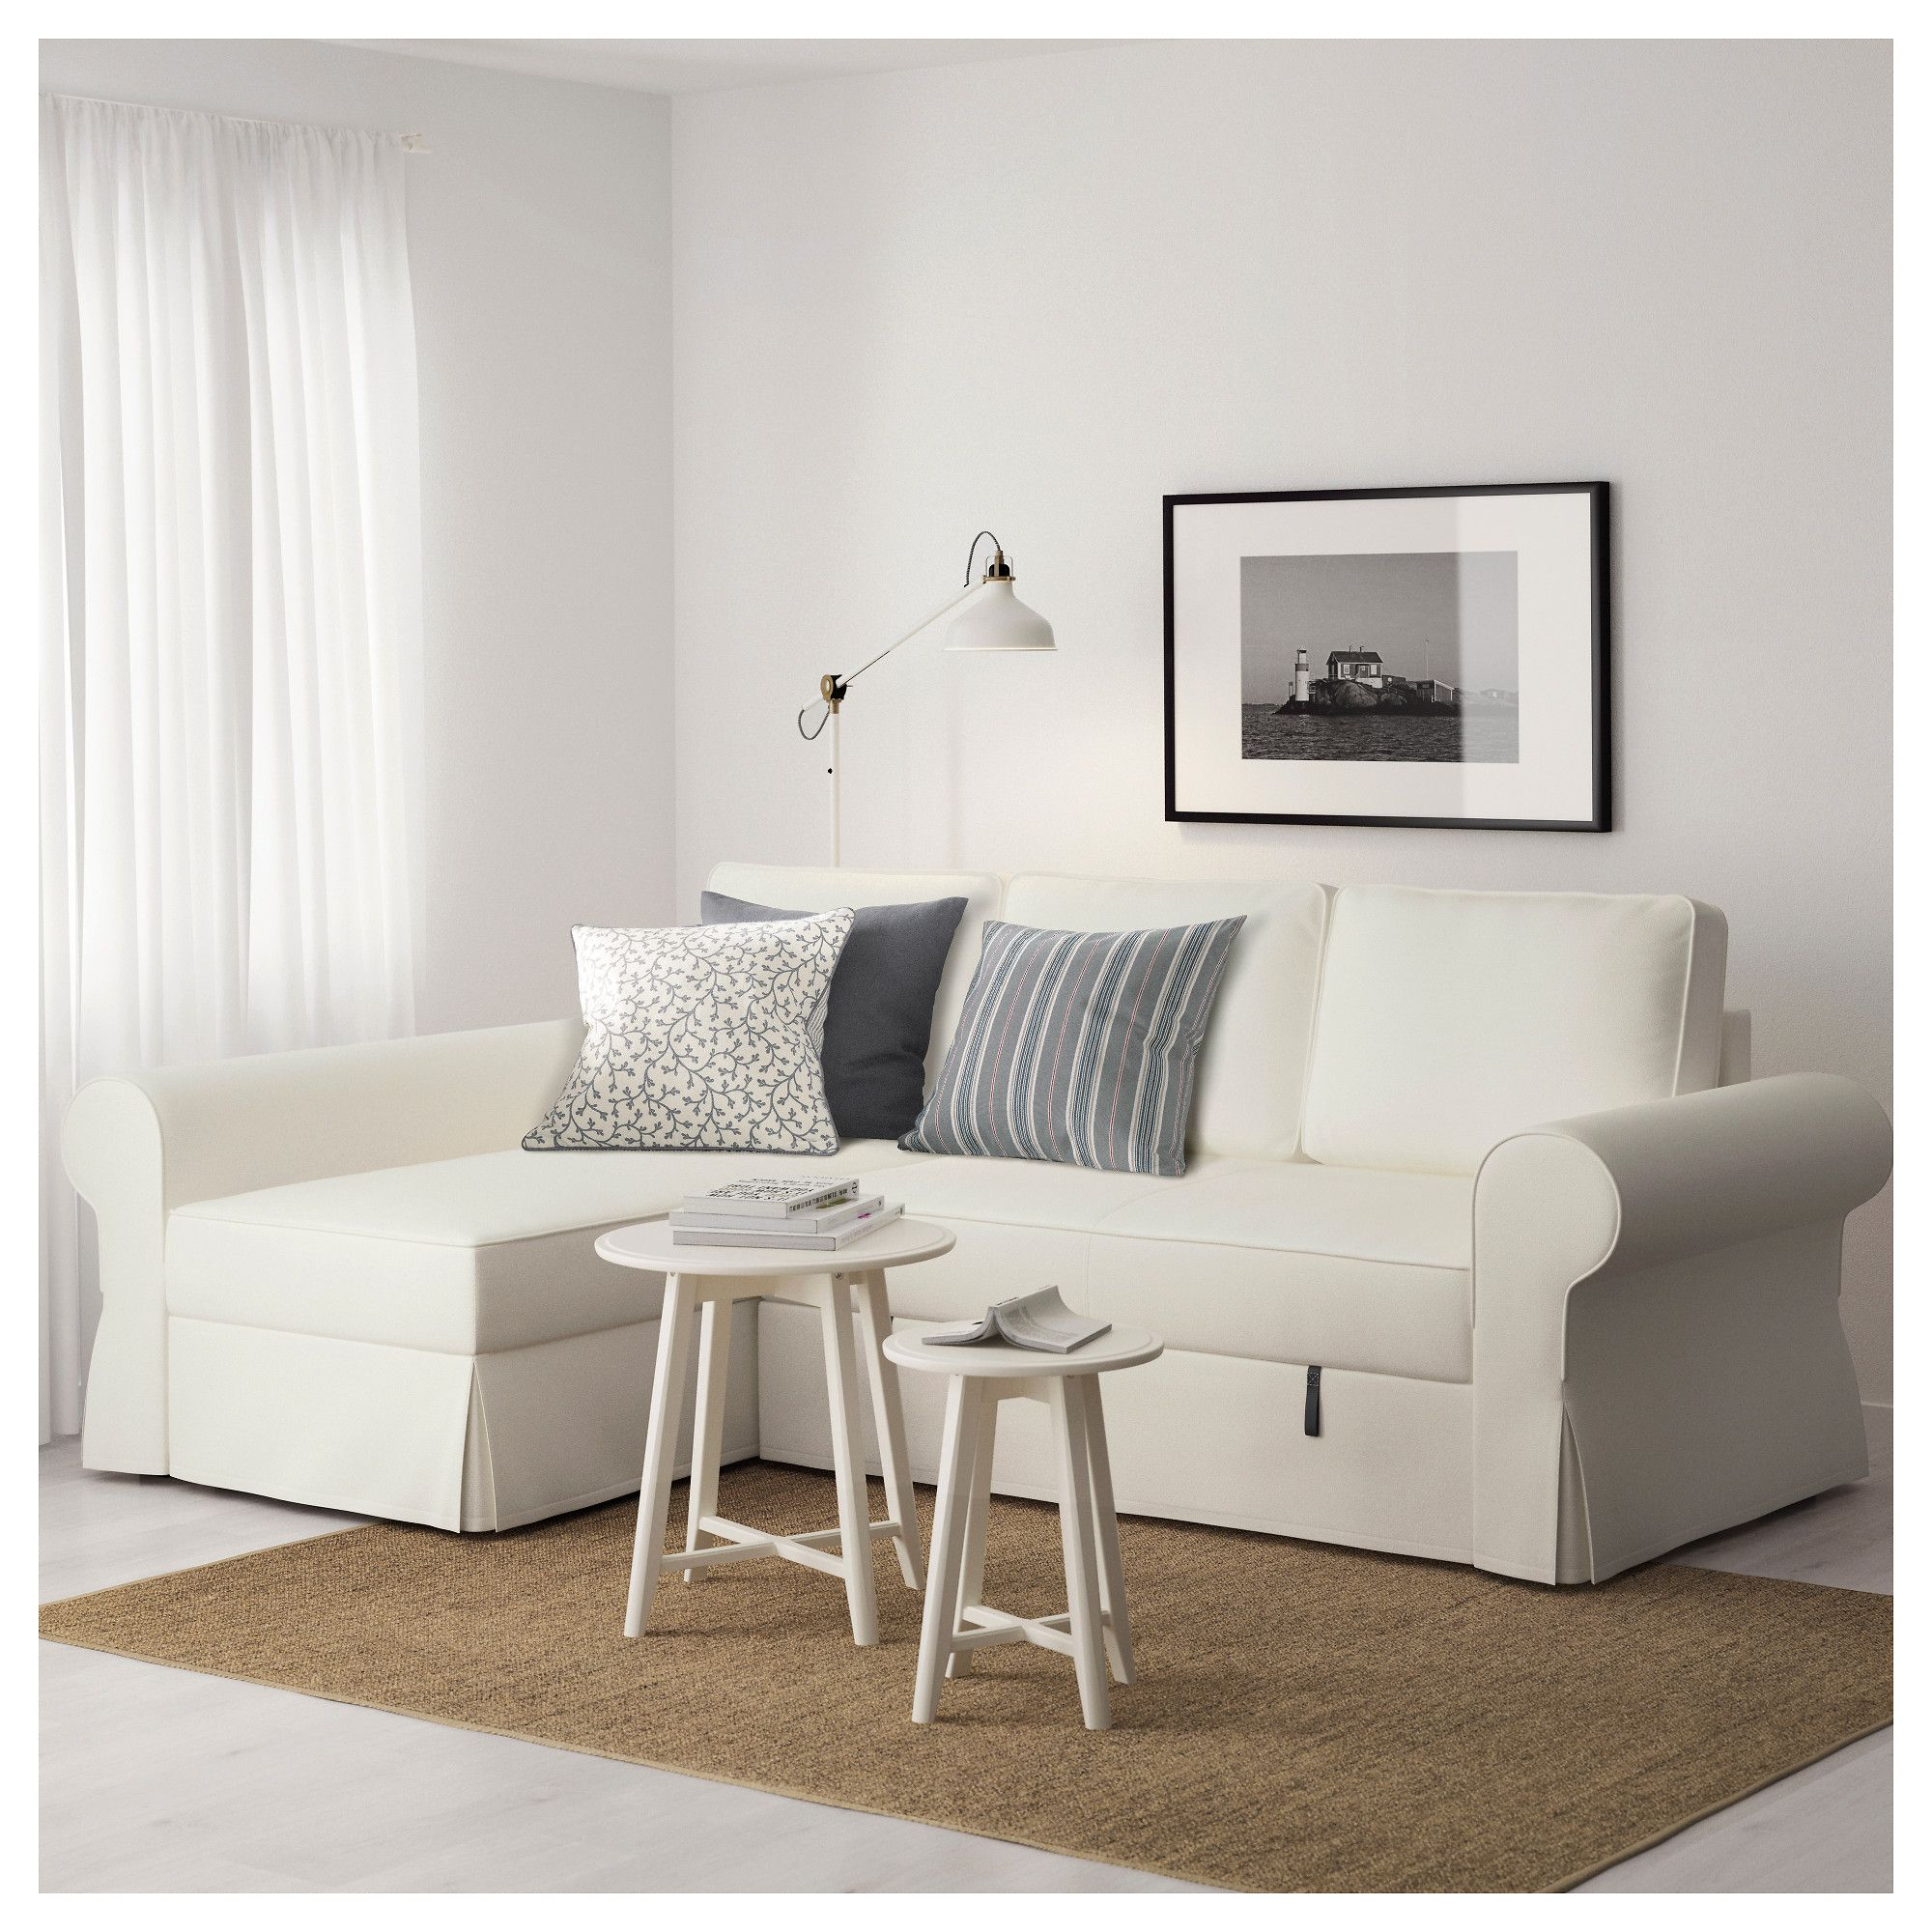 armchairs chair gb clean cm products beds easy since grey sofas bed ikea it keep en removable to the flottebo sofa is dark spr cover lysed